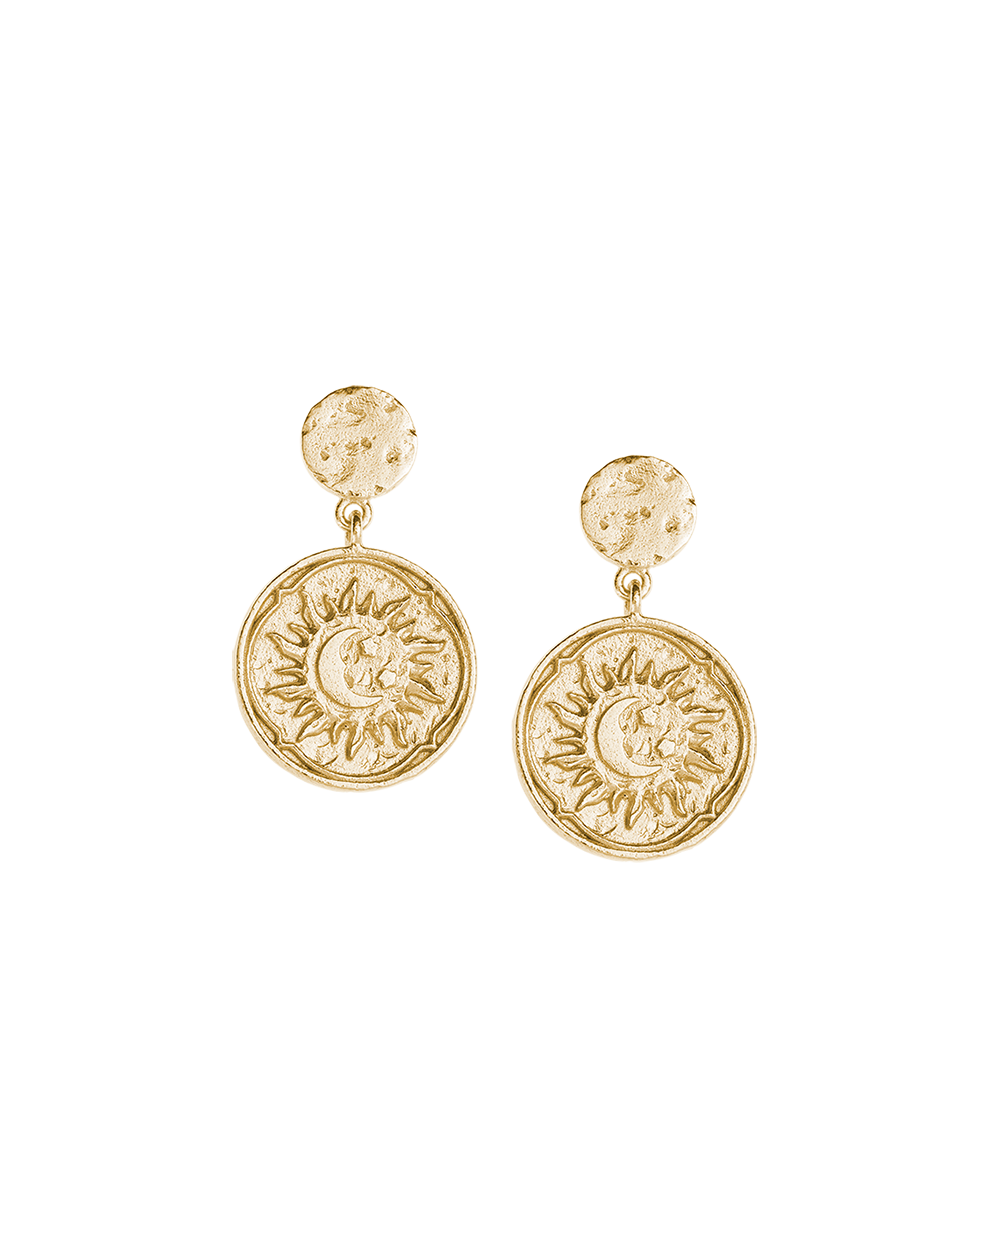 GOLDEN SUN COIN EARRINGS (14K-GOLD-PLATED) Image 03